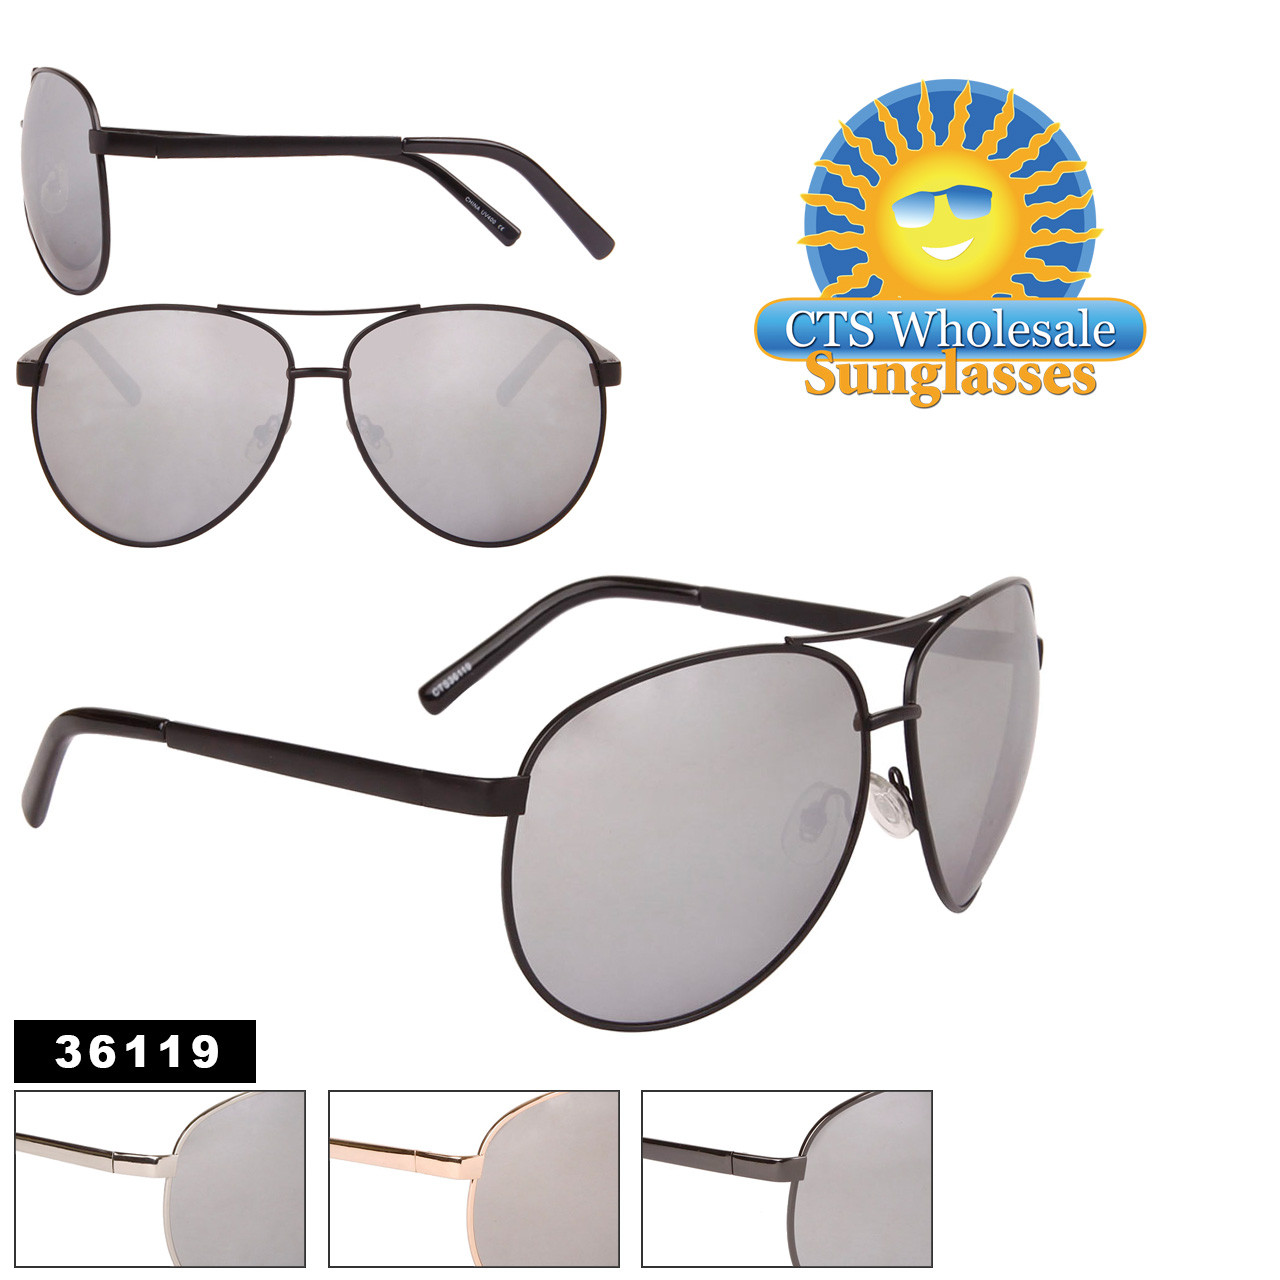 Mirrored Big Lens Aviators in Bulk - Style #36119